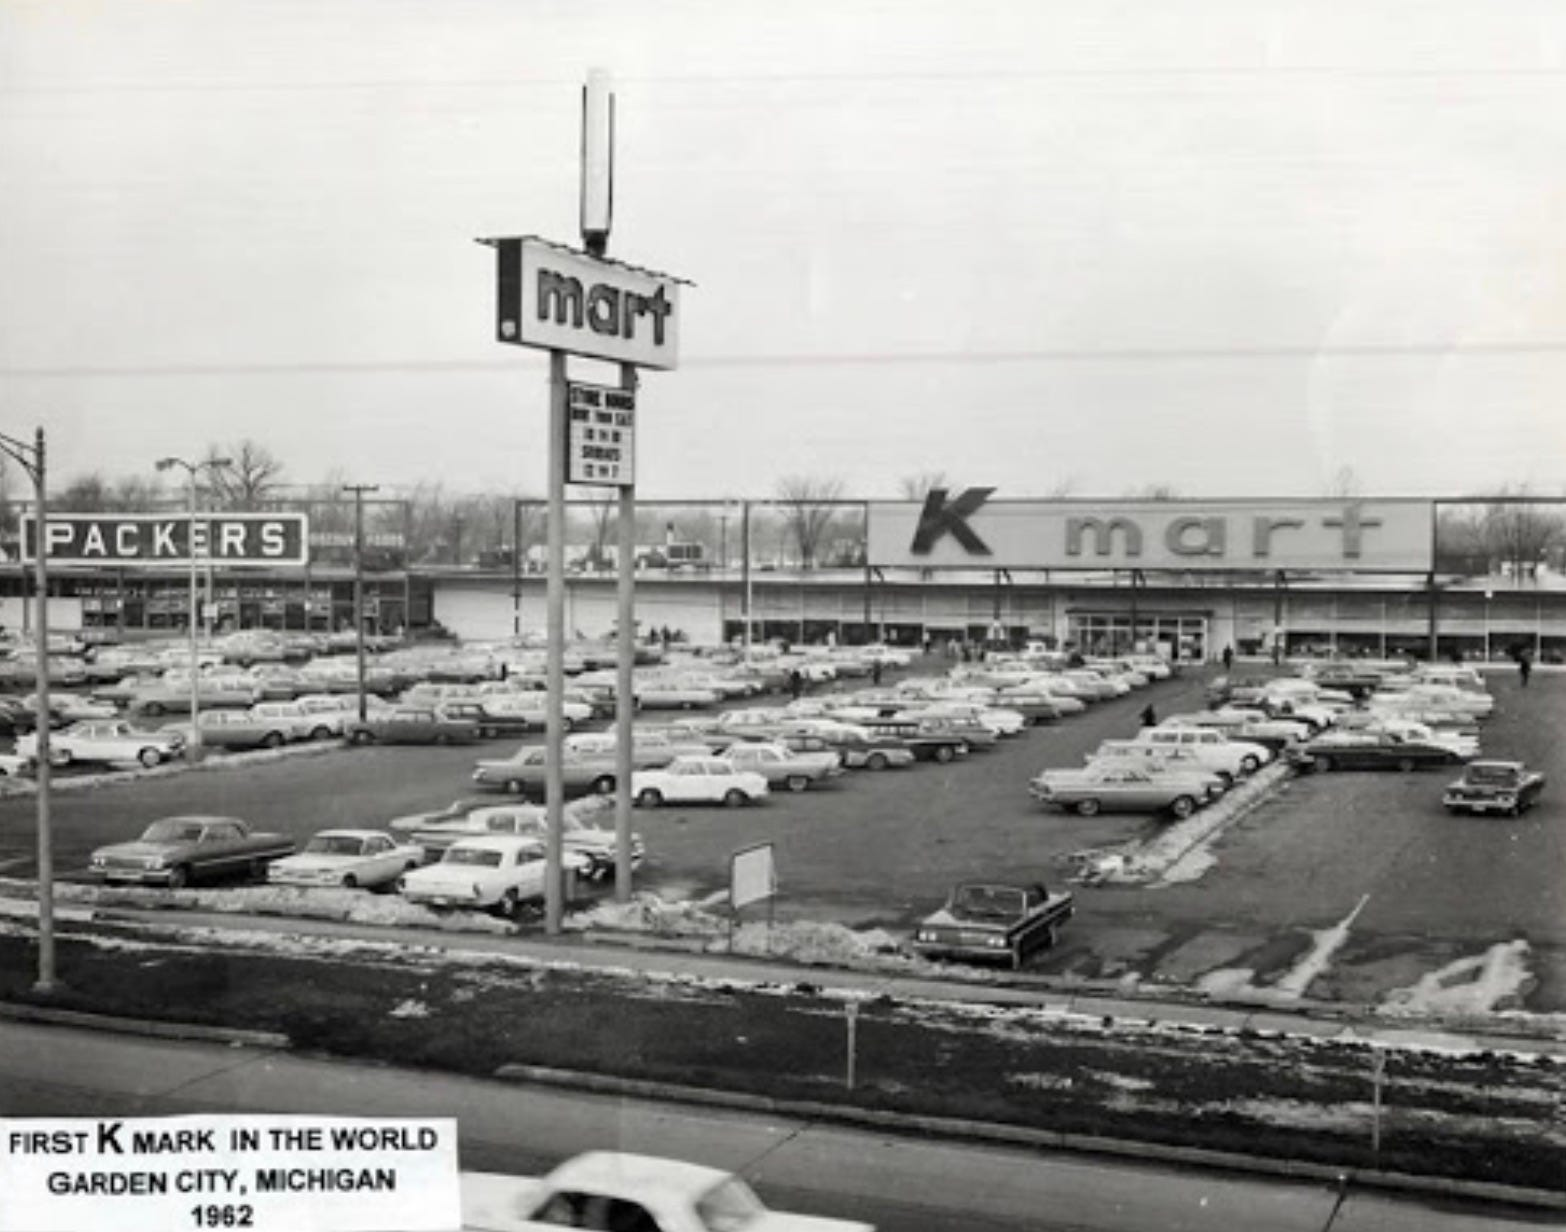 Today in History, March 1, 1962: First Kmart store opened